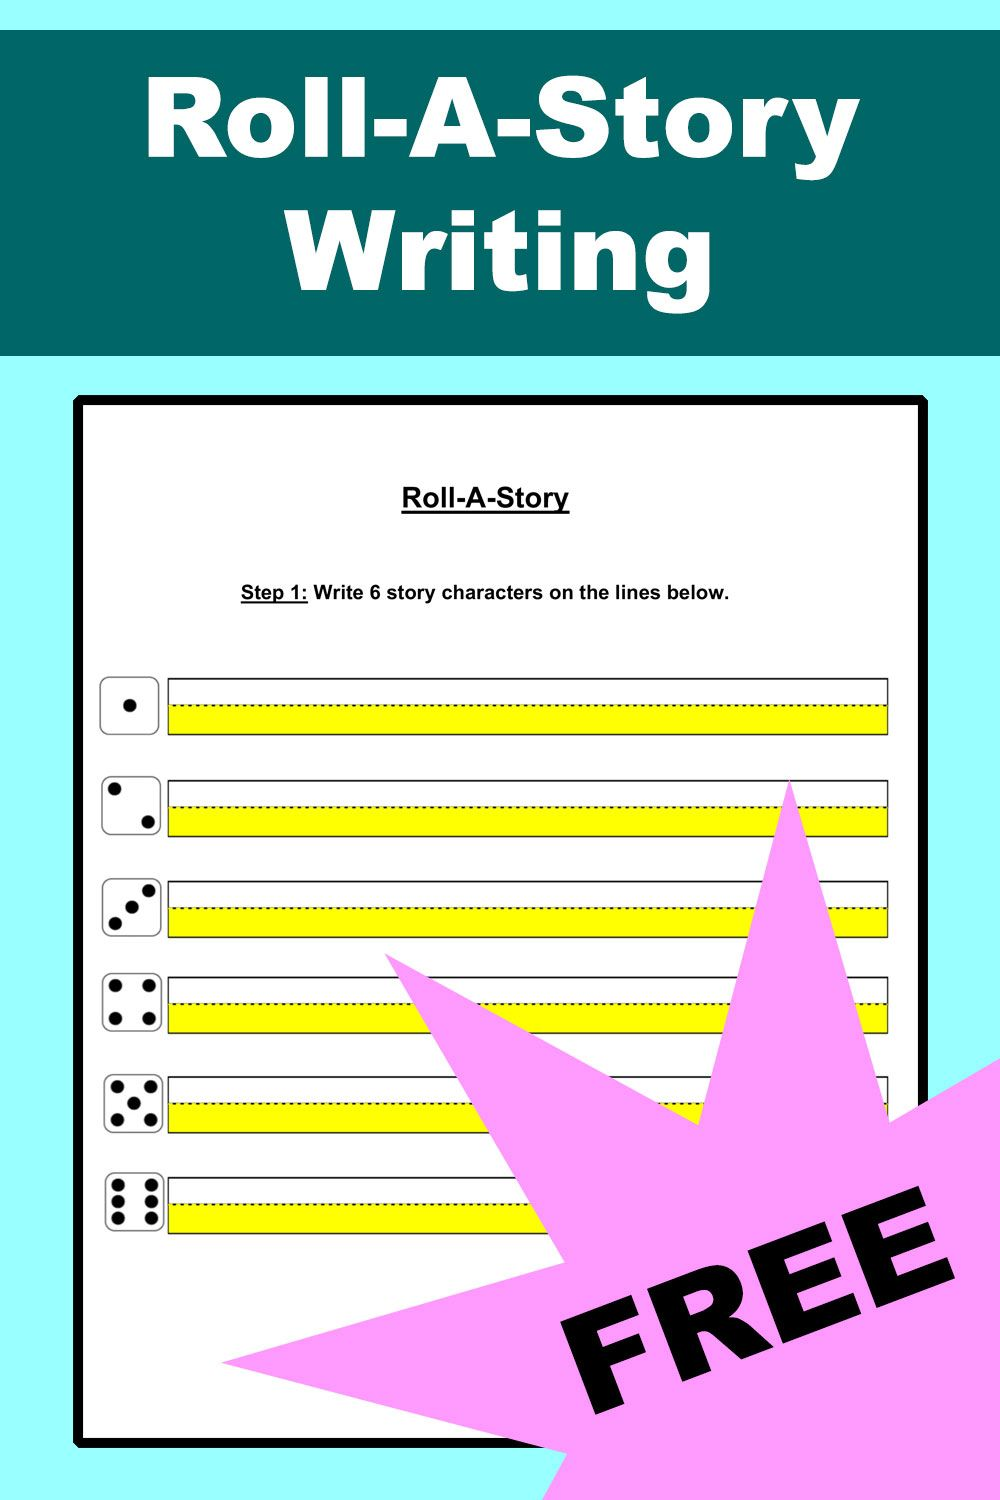 Roll A Story Writing Template Dice Game Roll A Story Writing Templates Story Writing [ 1500 x 1000 Pixel ]